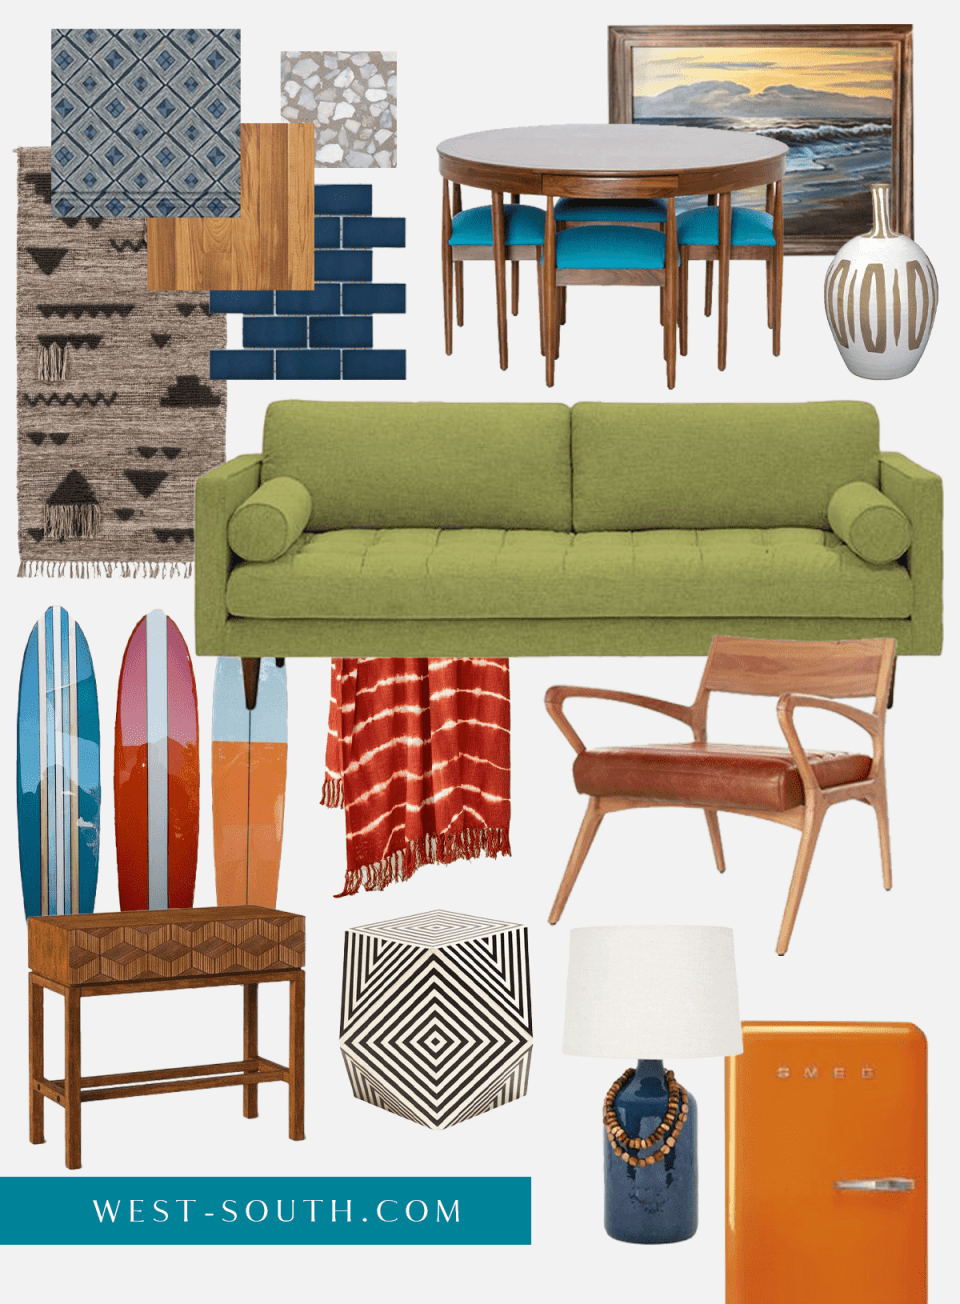 moodboard of surf shack style with retro colors and vintage furnishings